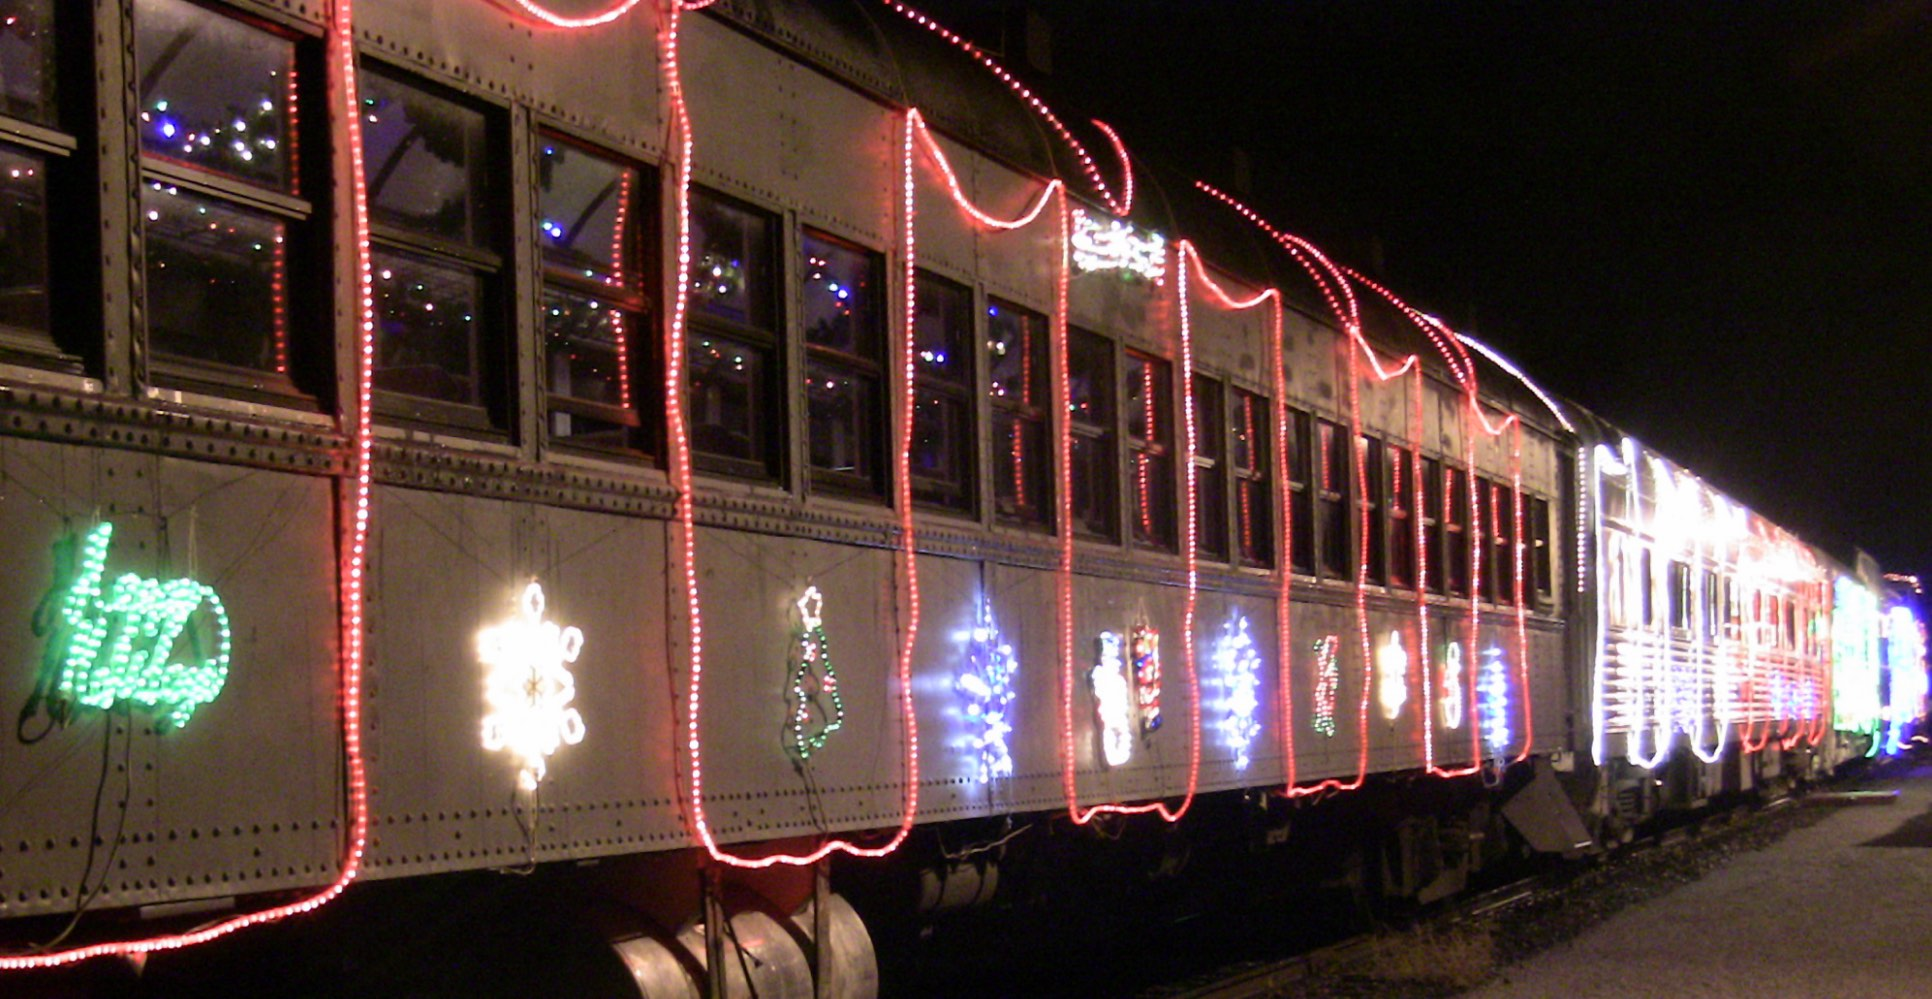 Niles Canyon Railway Train of Lights x-SP 2101 at Niles